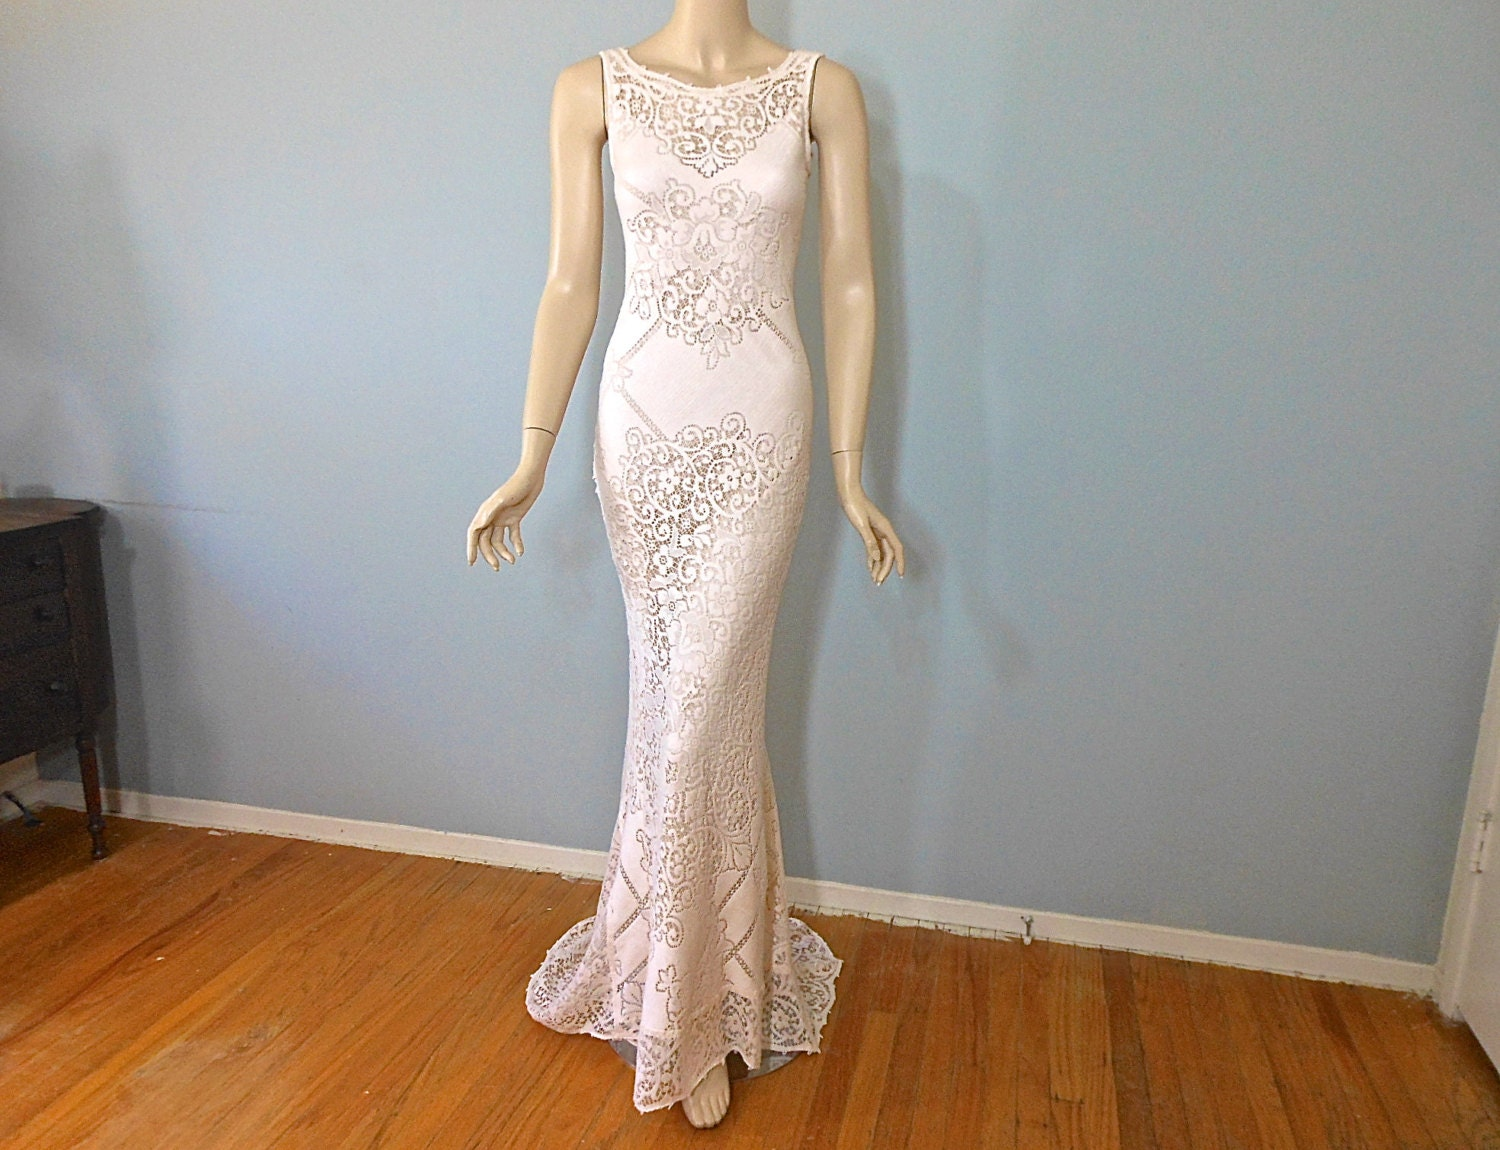 Boho Lace Wedding Dress Etsy : Peach lace wedding dress boho by museyclothing